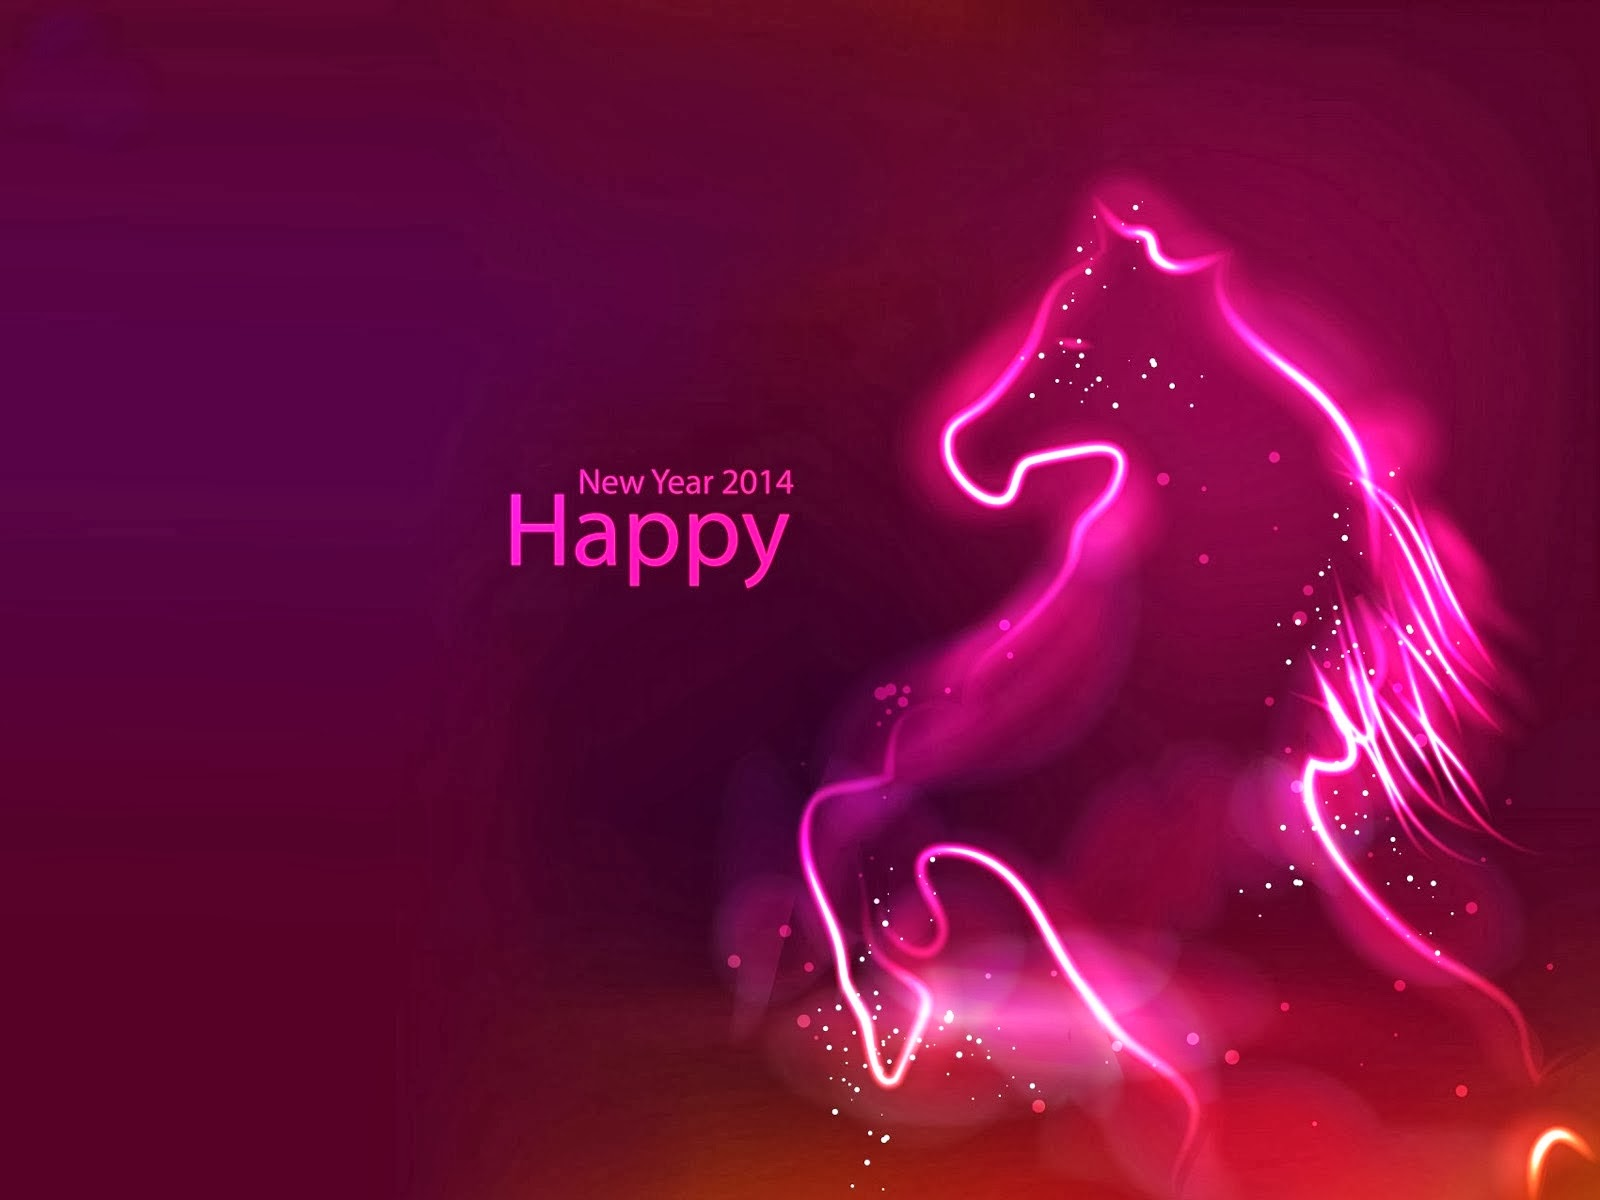 Happy Chinese New Year 2014 Wishes Quotes And Messages Happiness Style